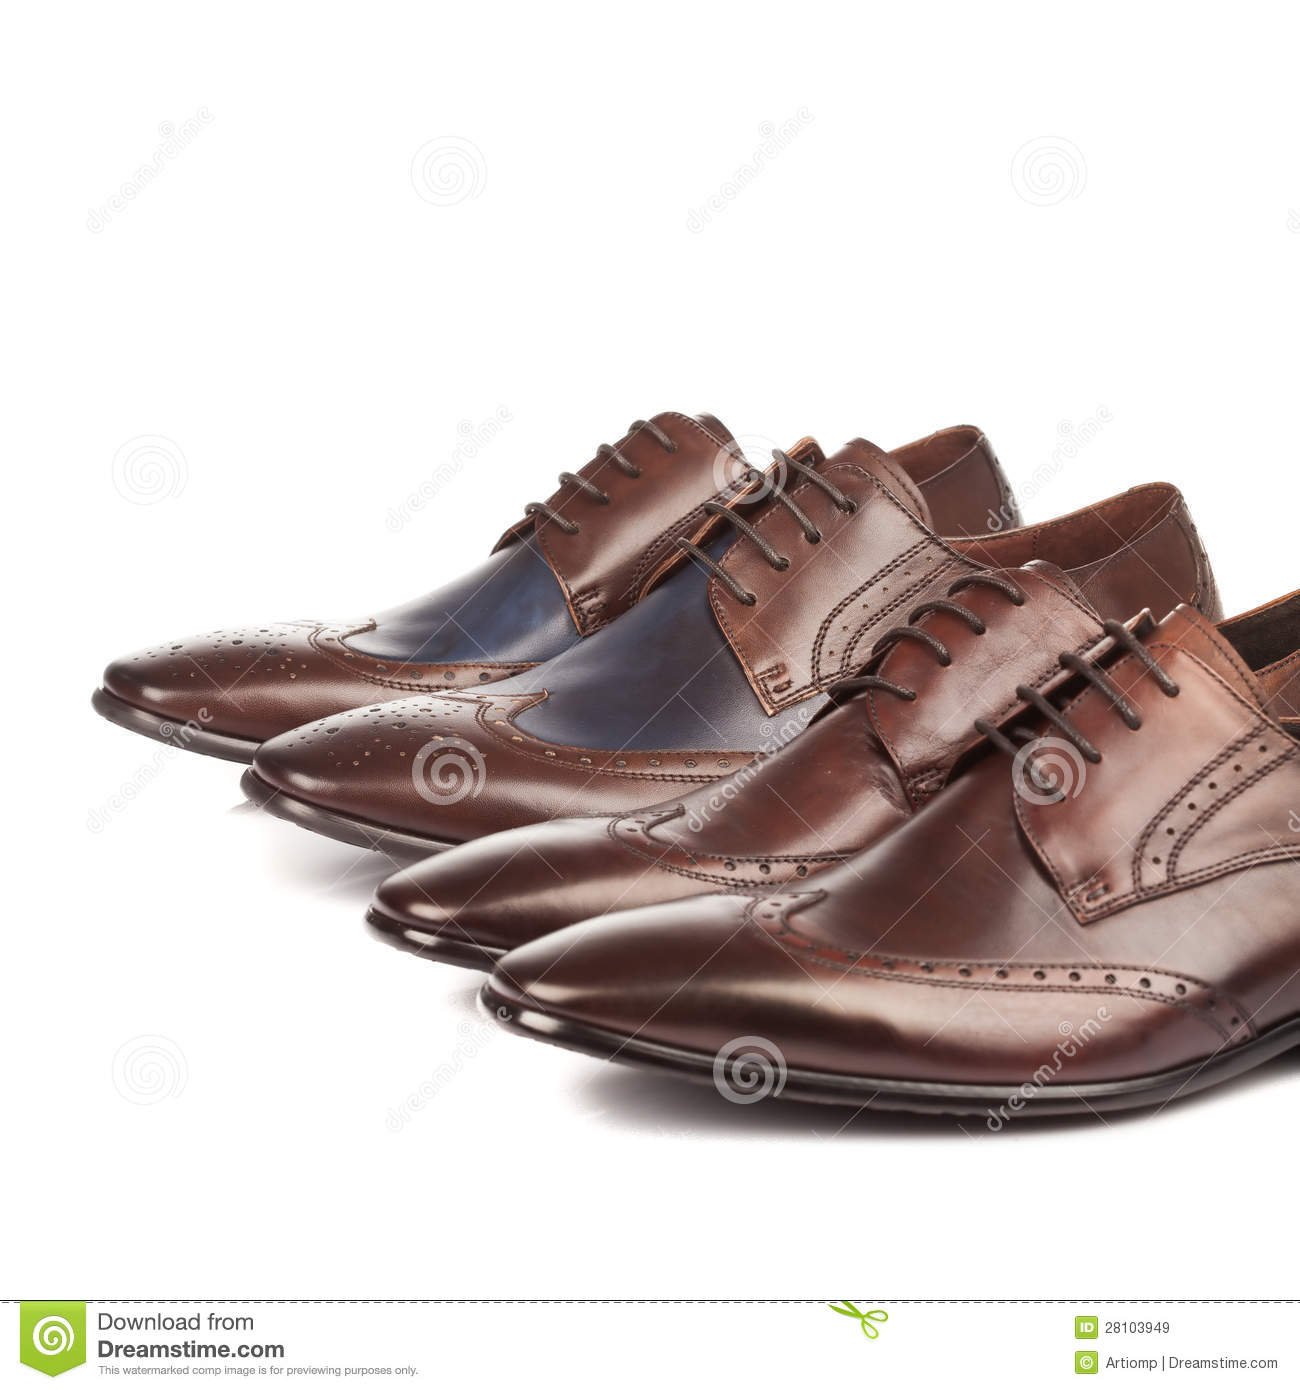 Fashion Male shoes rown brown color on white